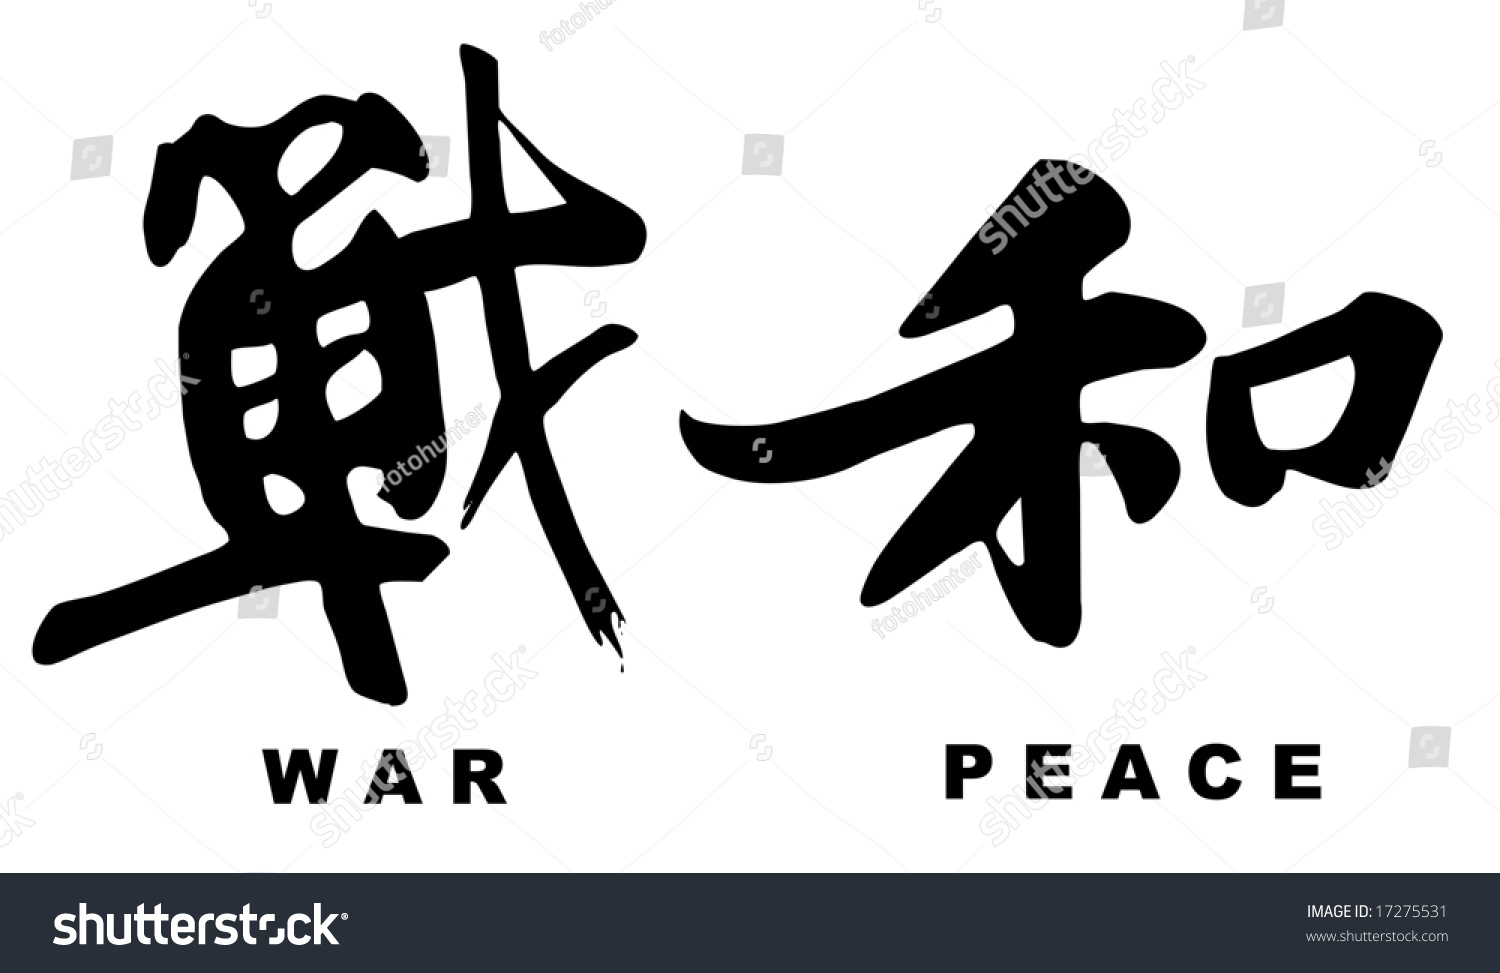 Chinese calligraphy war peace stock illustration 17275531 chinese calligraphy war and buycottarizona